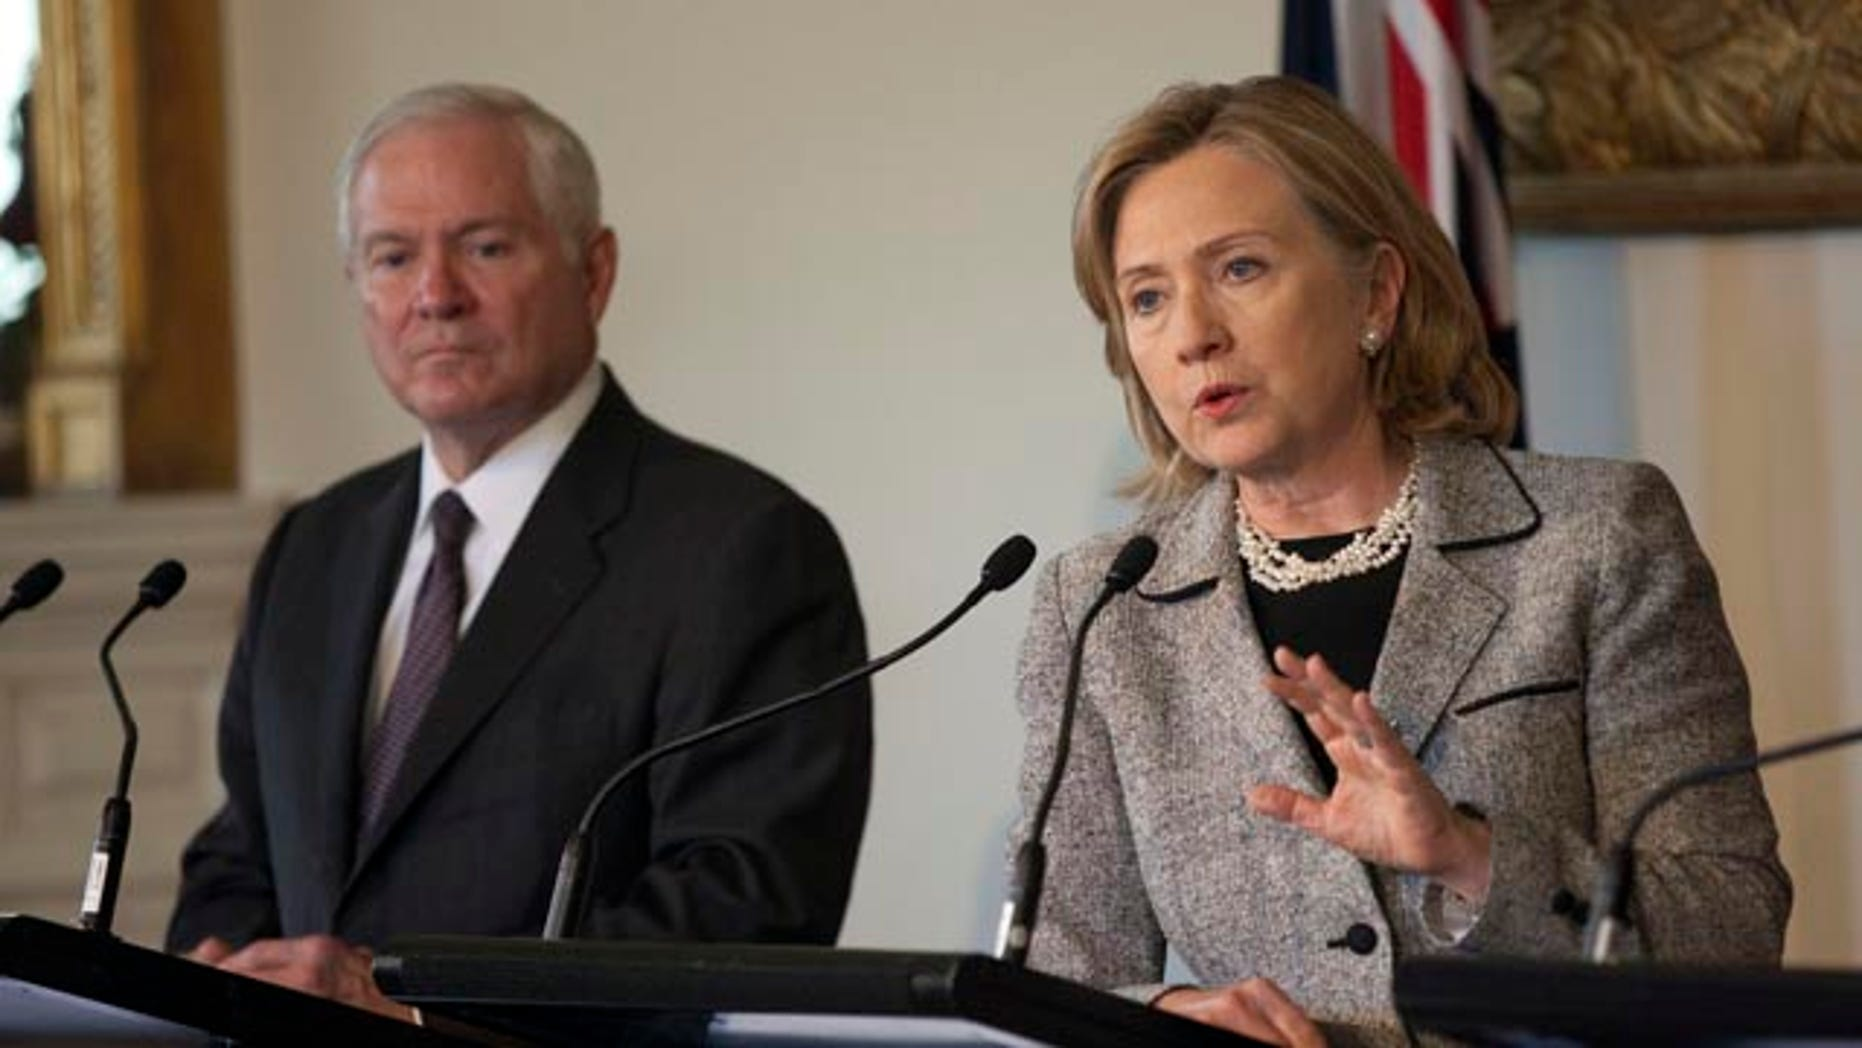 Nov. 8: U.S. Secretary of Defense Robert Gates and U.S. Secretary of State Hillary Rodham Clinton at a news conference at Government House in Melbourne, Australia. Clinton wishes for Gates to remain in office saying, 'We came in together, we should go out together. That's my theory.'